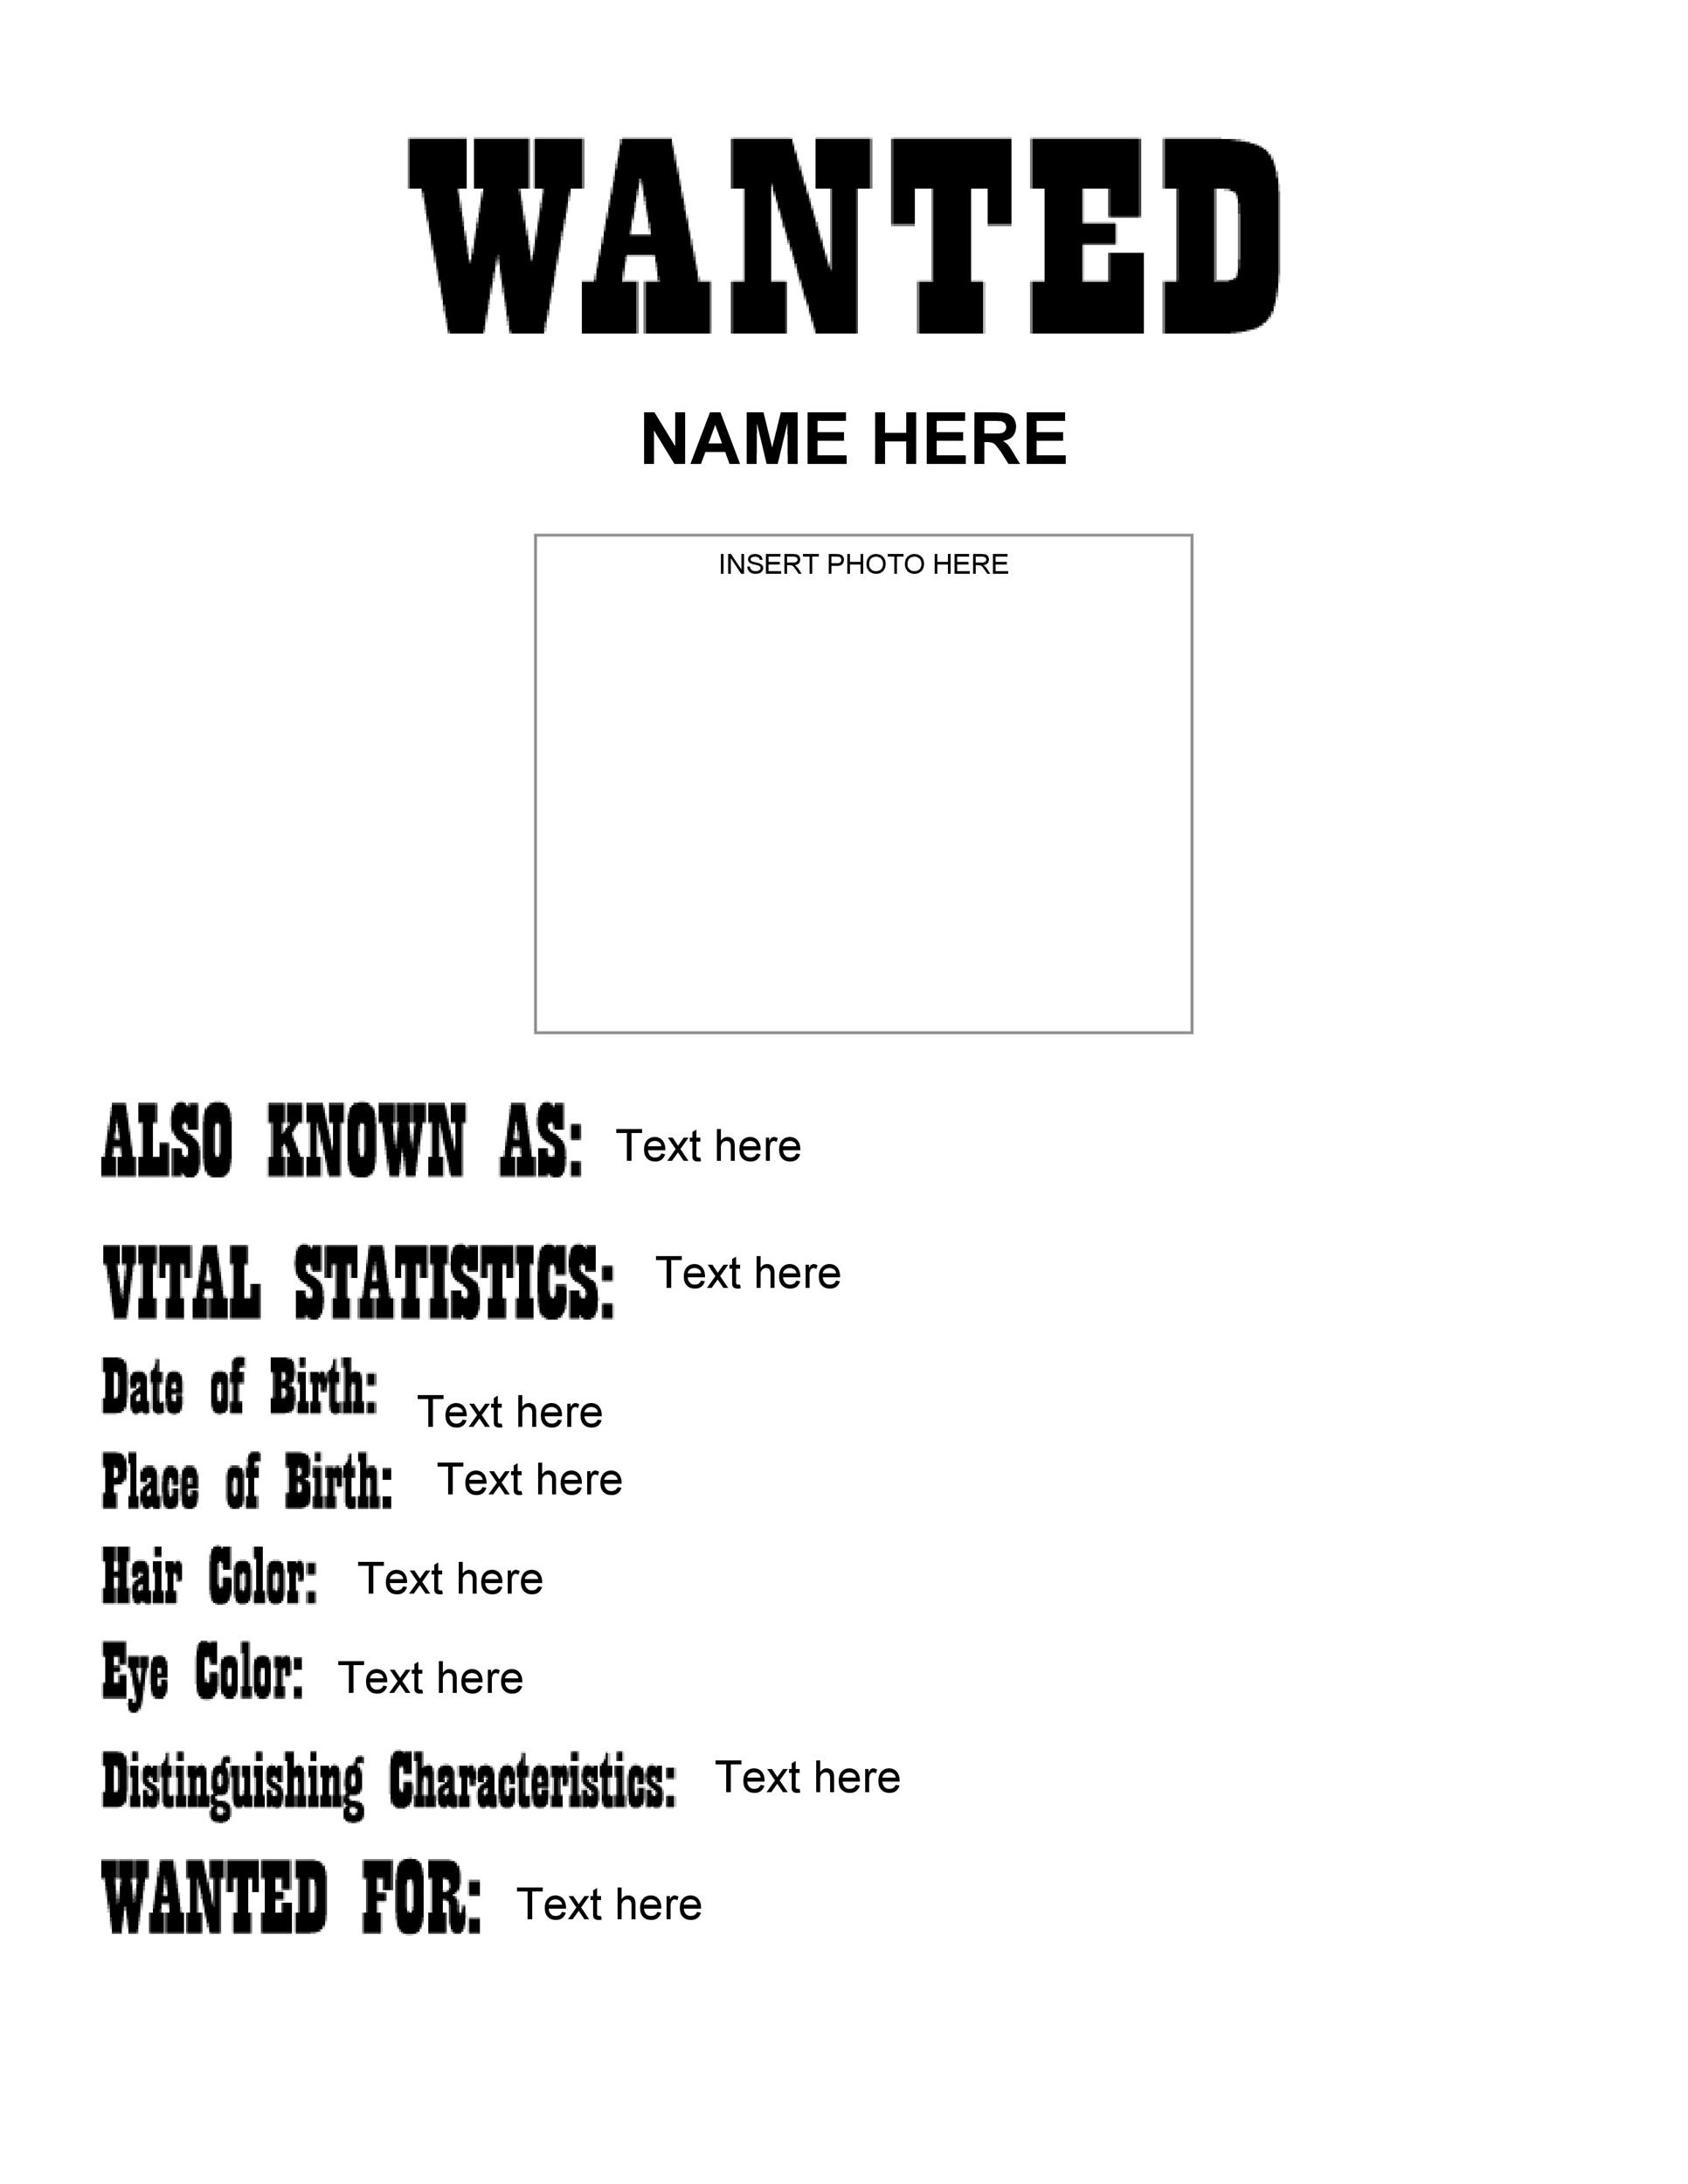 29 free wanted poster templates fbi